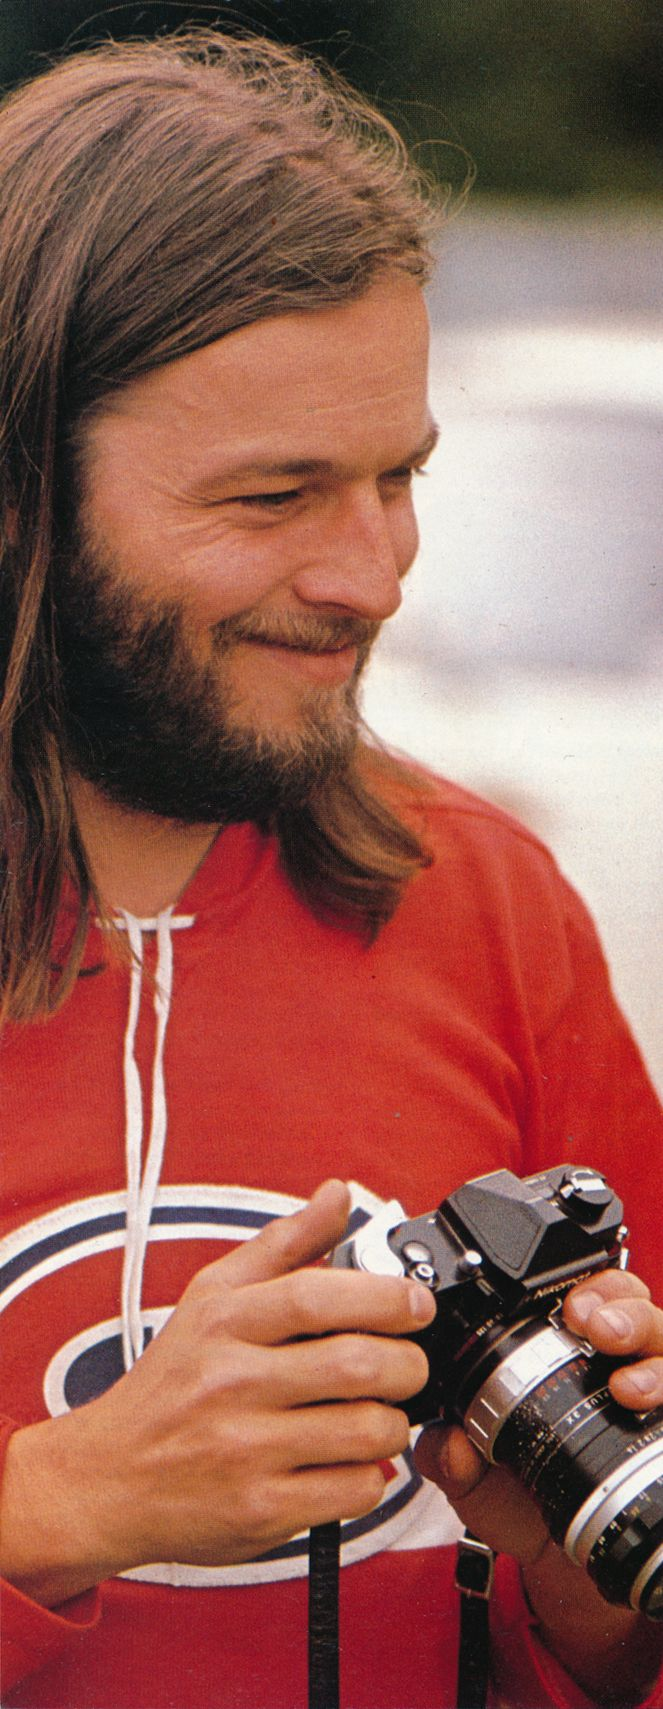 David Gilmour backstage Knebworth July 51975. At this show the Floyd performed all of Wish You Were Here followed by Dark Side Of The Moon with Echoes as the encore. What a show!